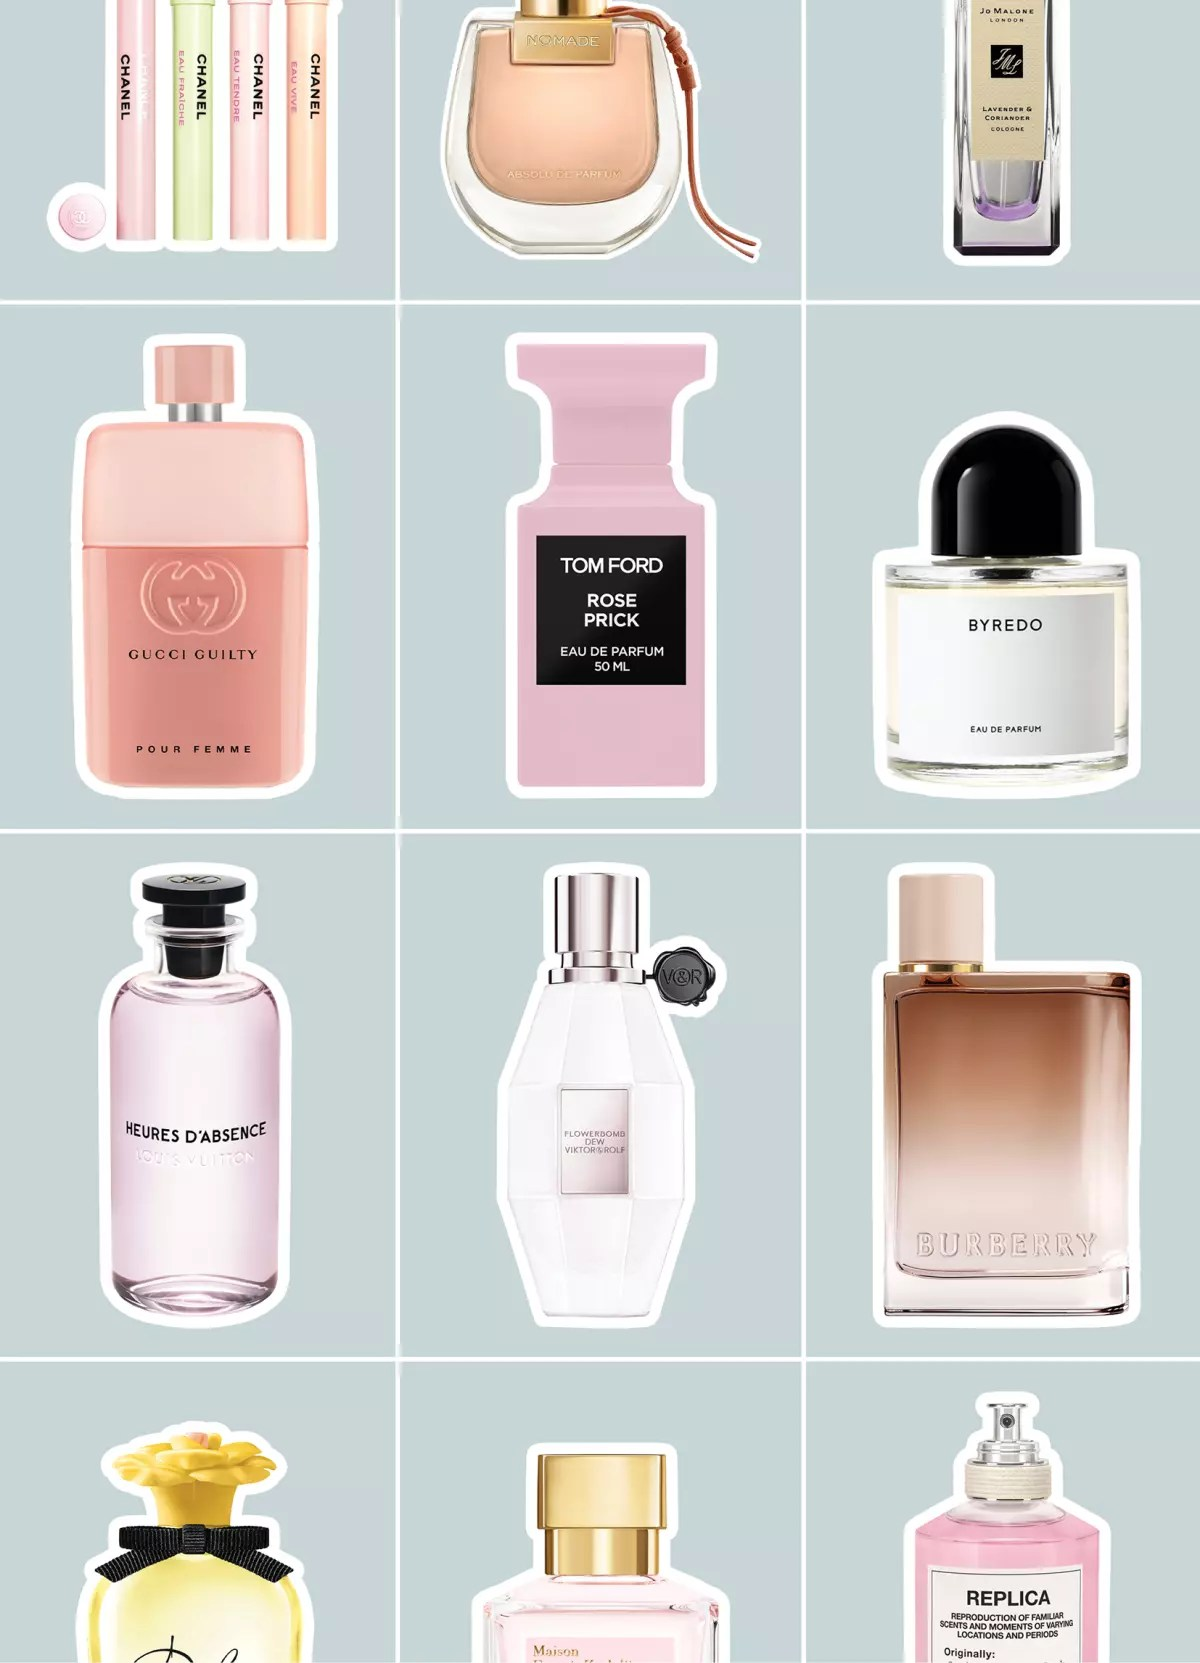 Name A Manufacturer Of Women's Perfume : manufacturer, women's, perfume, Perfumes, Women, Luxury, Women's, Fragrances